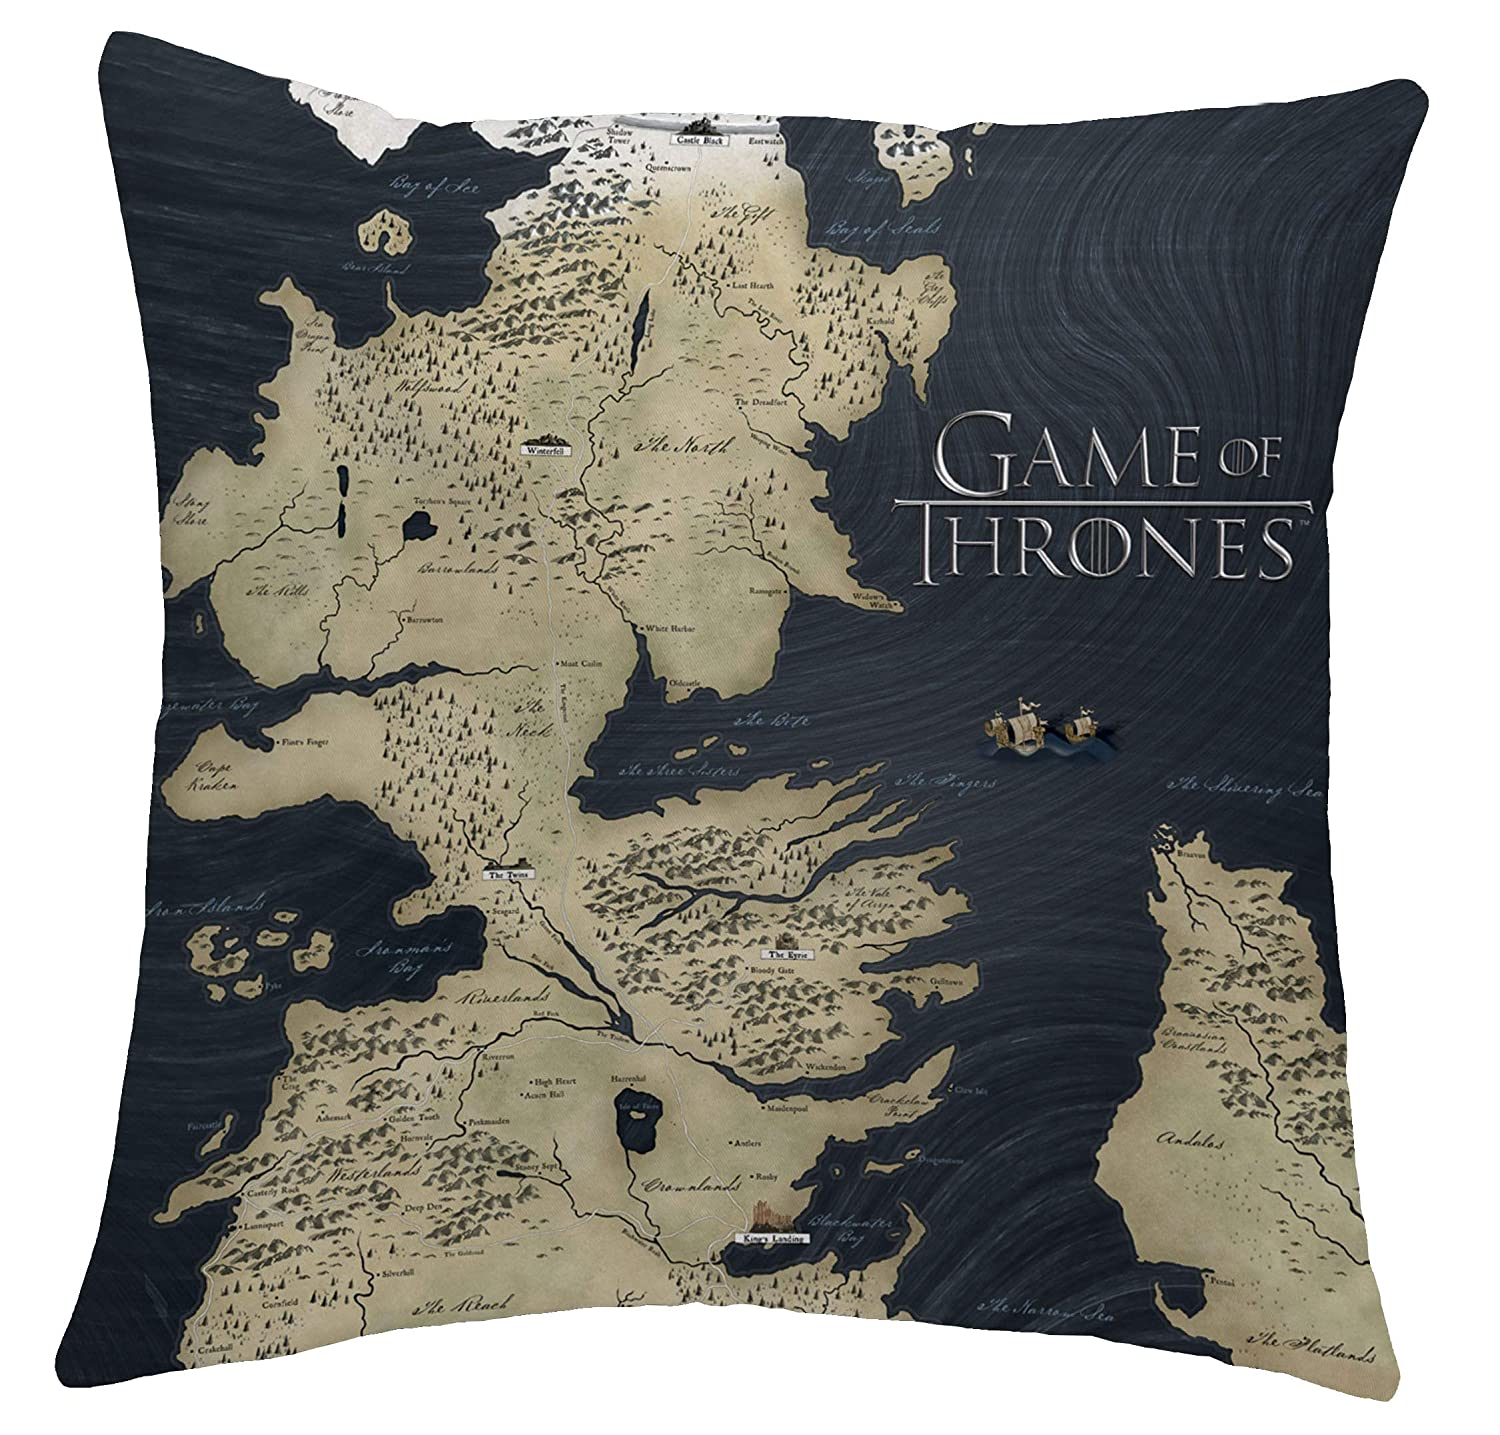 Game of Thrones Cushion (Official Merchandise) | Westeros Map House Game Of Thrones Map Stark on spooksville map, downton abbey map, narnia map, bloodline map, got map, justified map, jericho map, qarth map, camelot map, walking dead map, a storm of swords map, gendry map, world map, star trek map, guild wars 2 map, clash of kings map, dallas map, valyria map, winterfell map, jersey shore map,